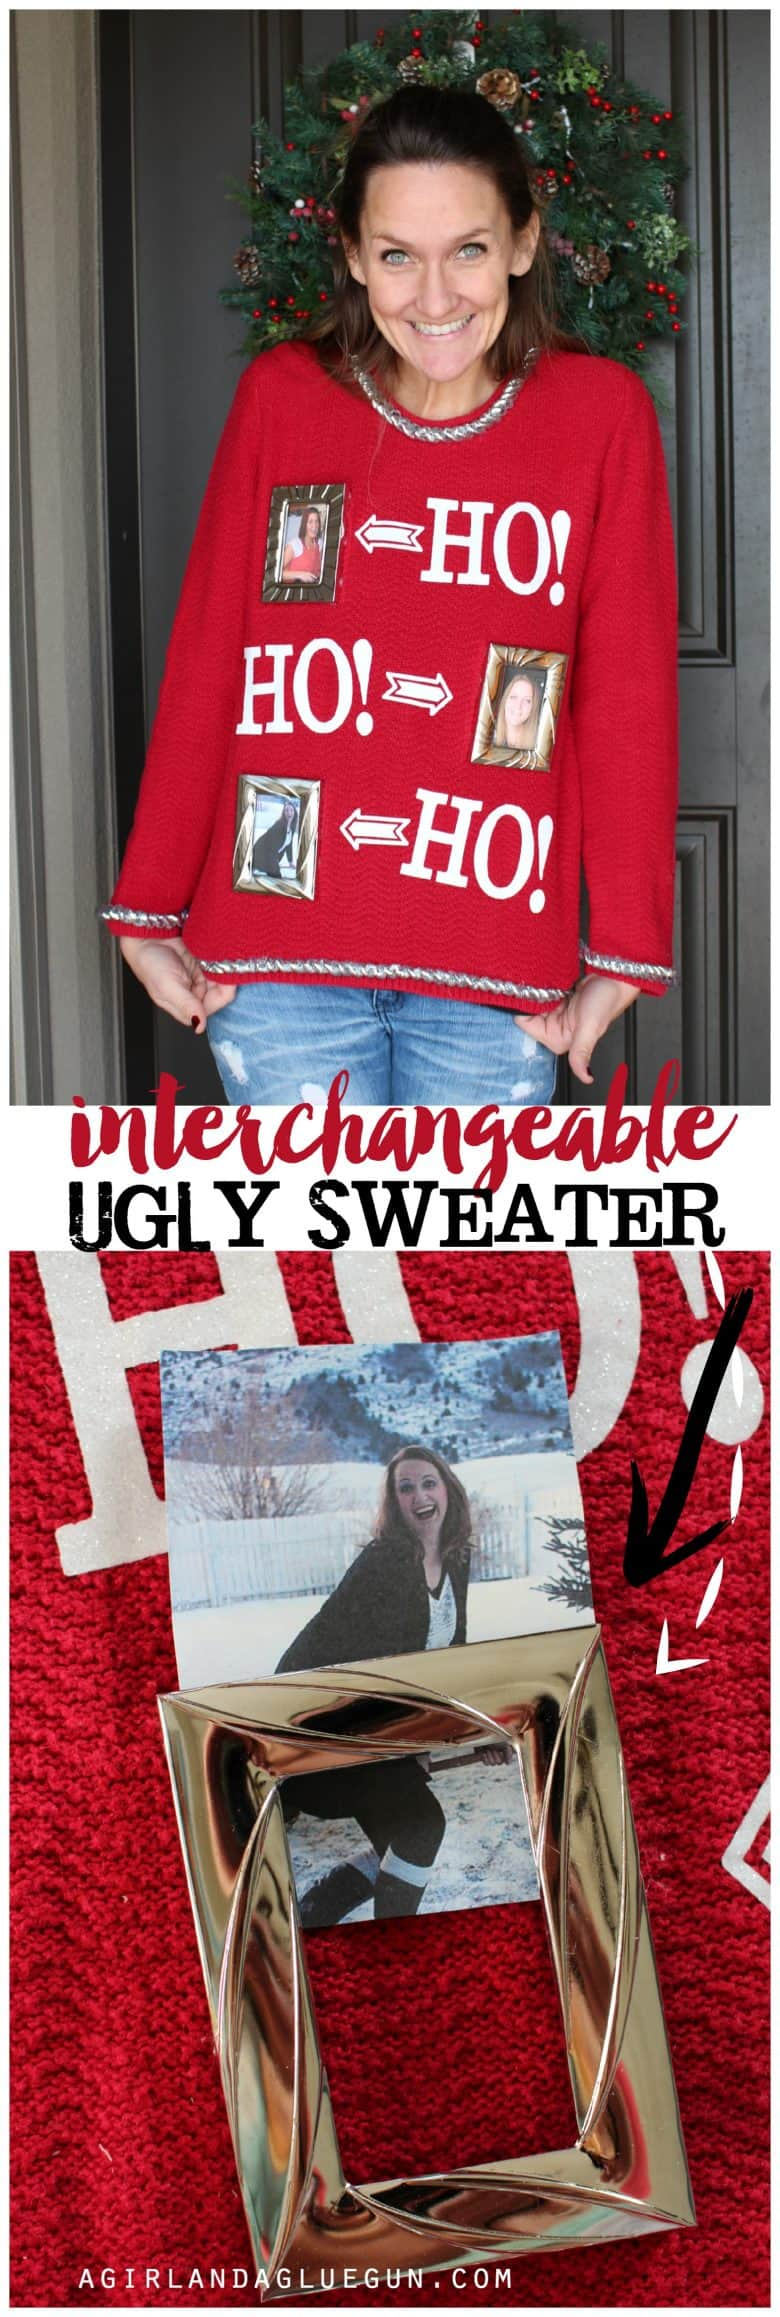 Viewing prizes for ugly sweater